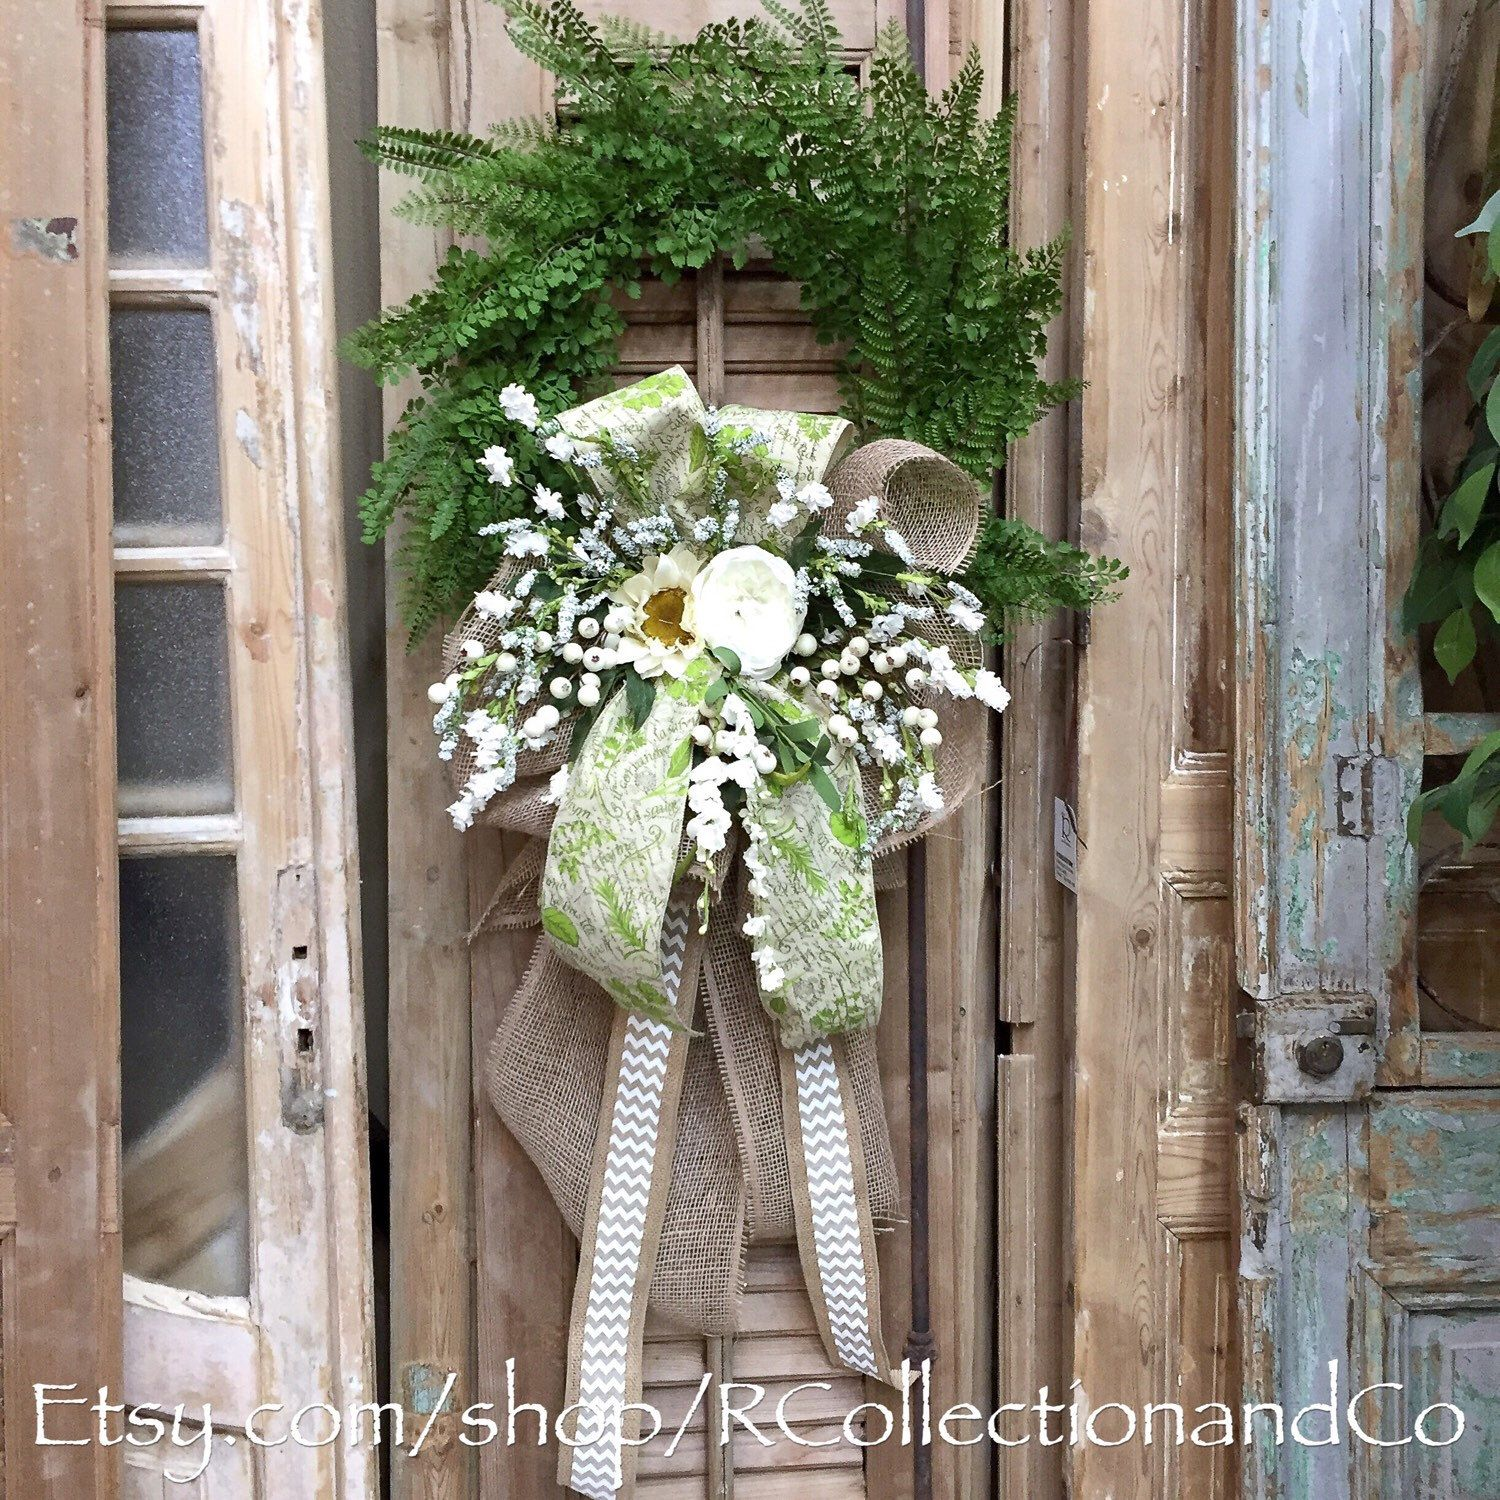 Faux Fern Sunflower & Rose Outdoor Wreath, Wreath, Door Decor, Fern Wreath by RcollectionandCo on Etsy https://www.etsy.com/listing/293486467/faux-fern-sunflower-rose-outdoor-wreath